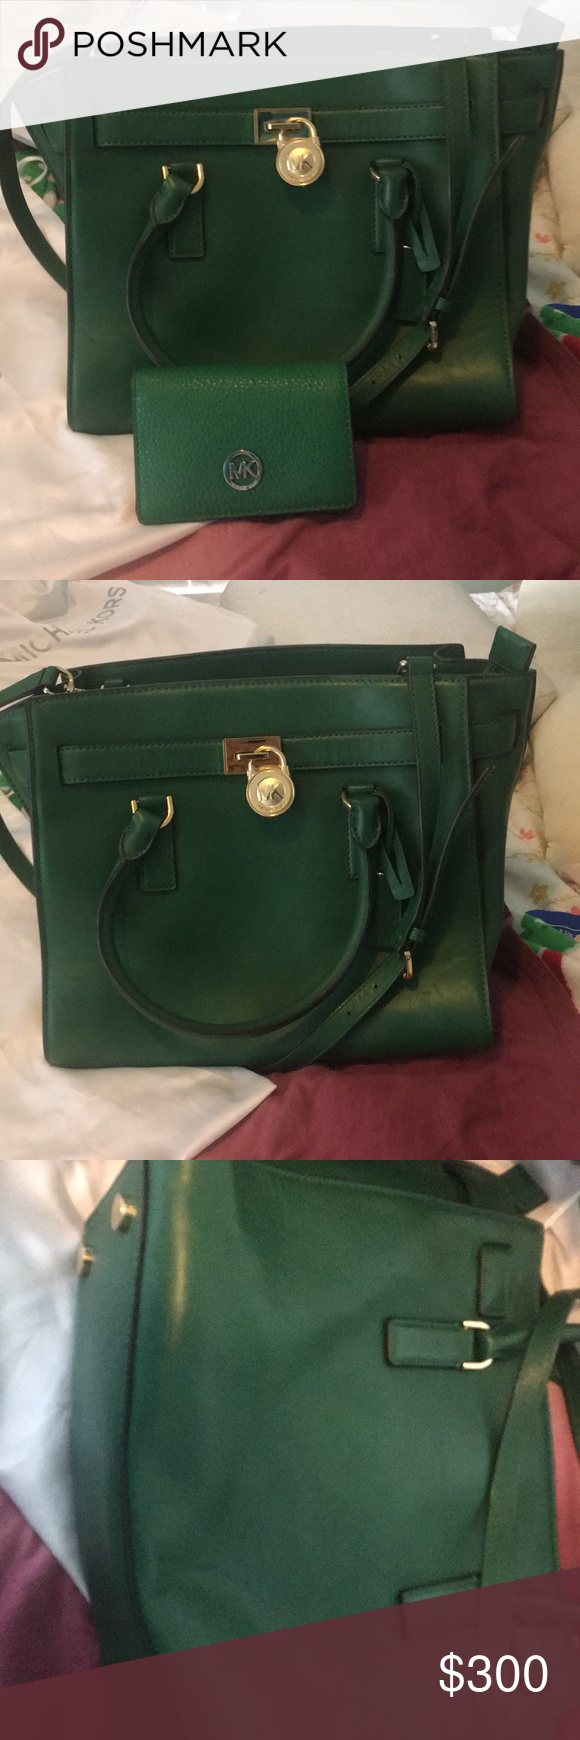 052b39532b4d Emerald green Michael Kors bag and wallet Like new. Comes with dust cover,  but no tags. It's a little bent at the bottom. Use can be seen in photos.